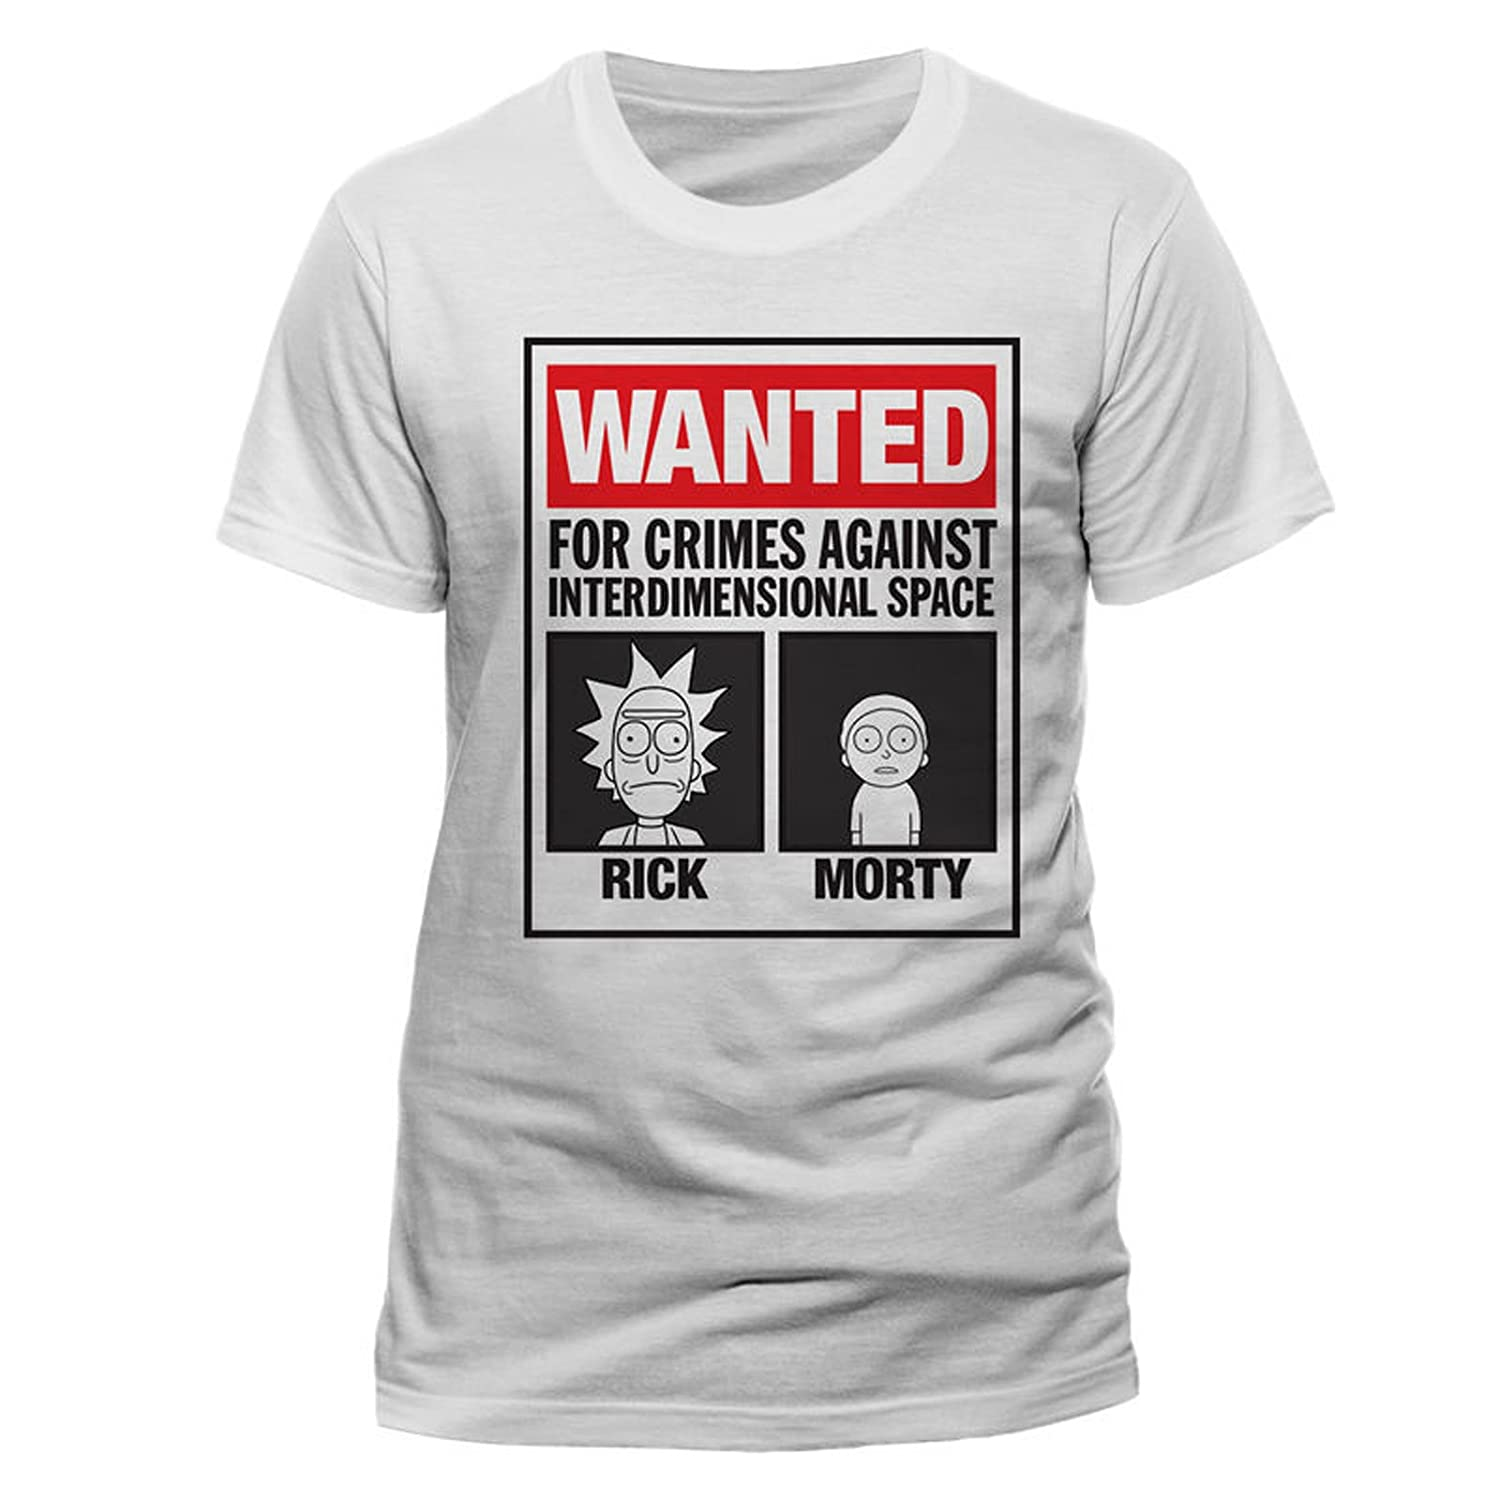 Rick and Morty Mugshots Adult Swim oficial Camiseta para hombre: Amazon.es: Ropa y accesorios